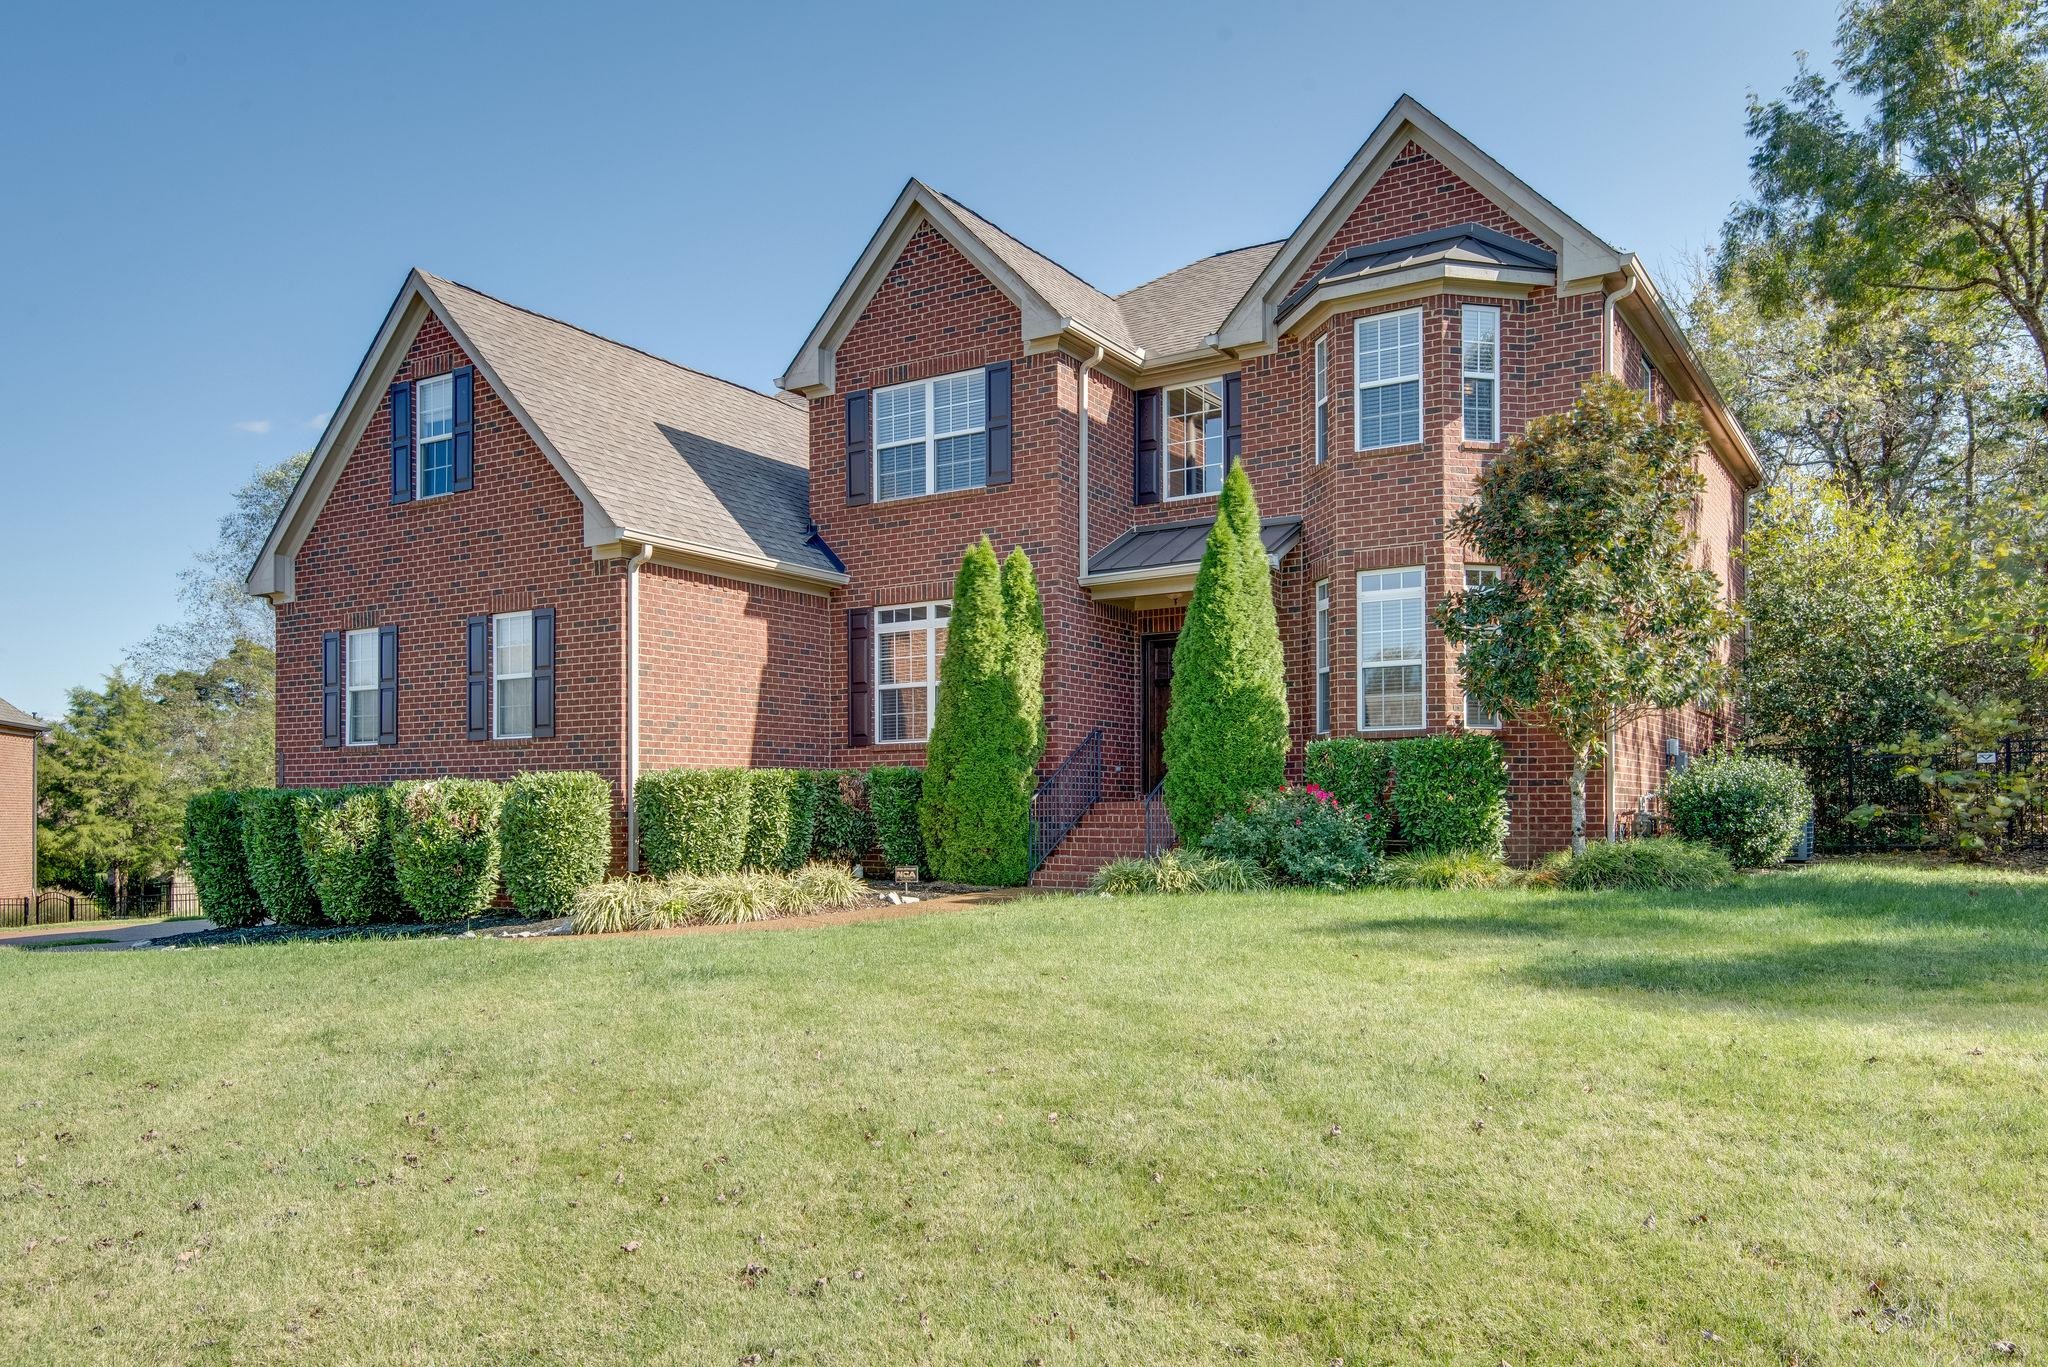 2040 Catalina Way, Nolensville, TN 37135 - Nolensville, TN real estate listing